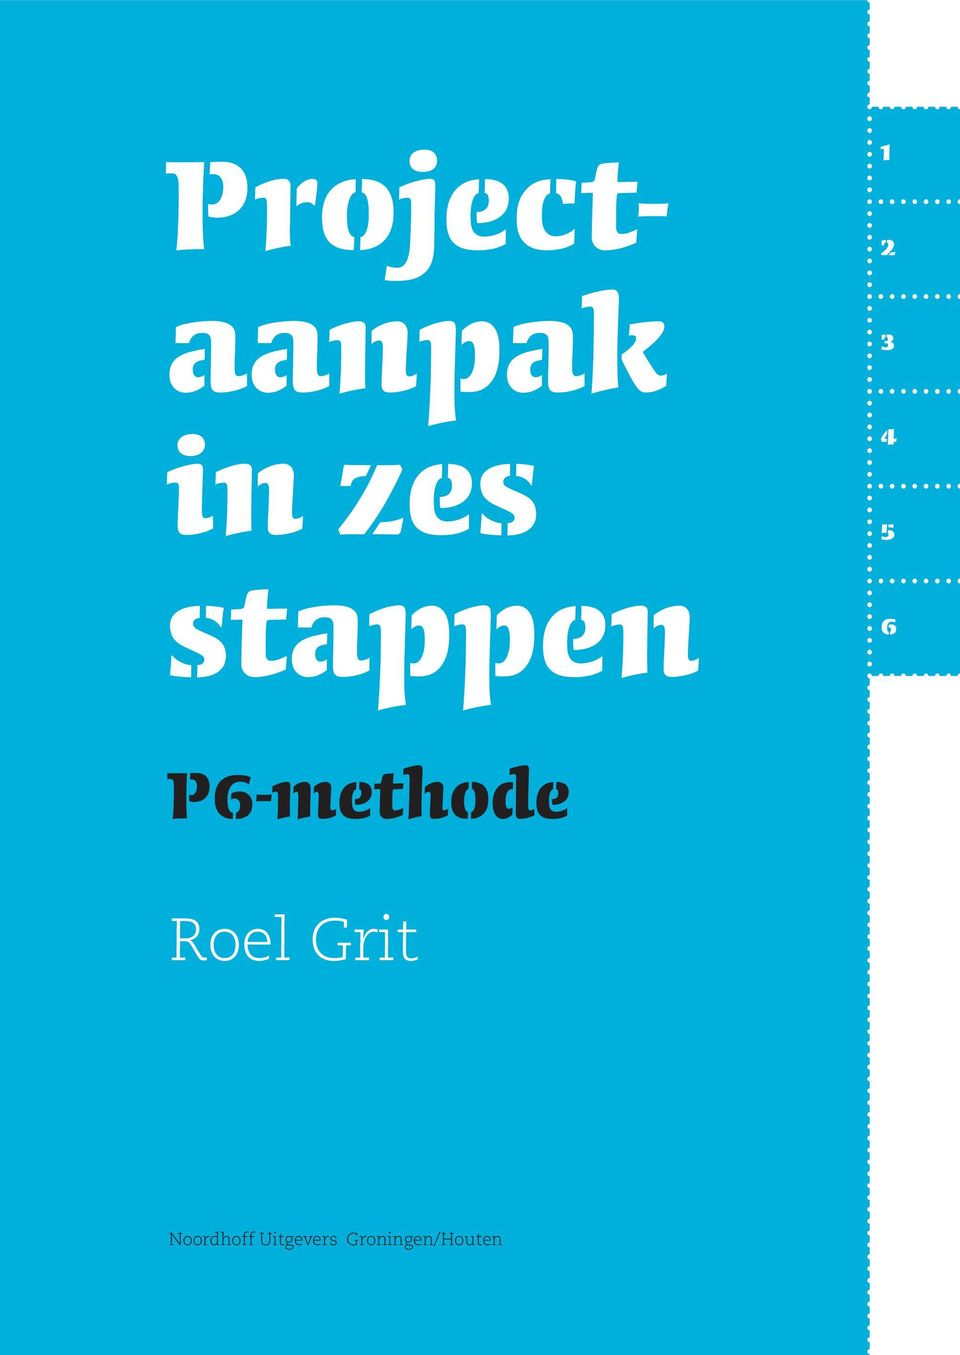 P6-methode 8 Roel Grit